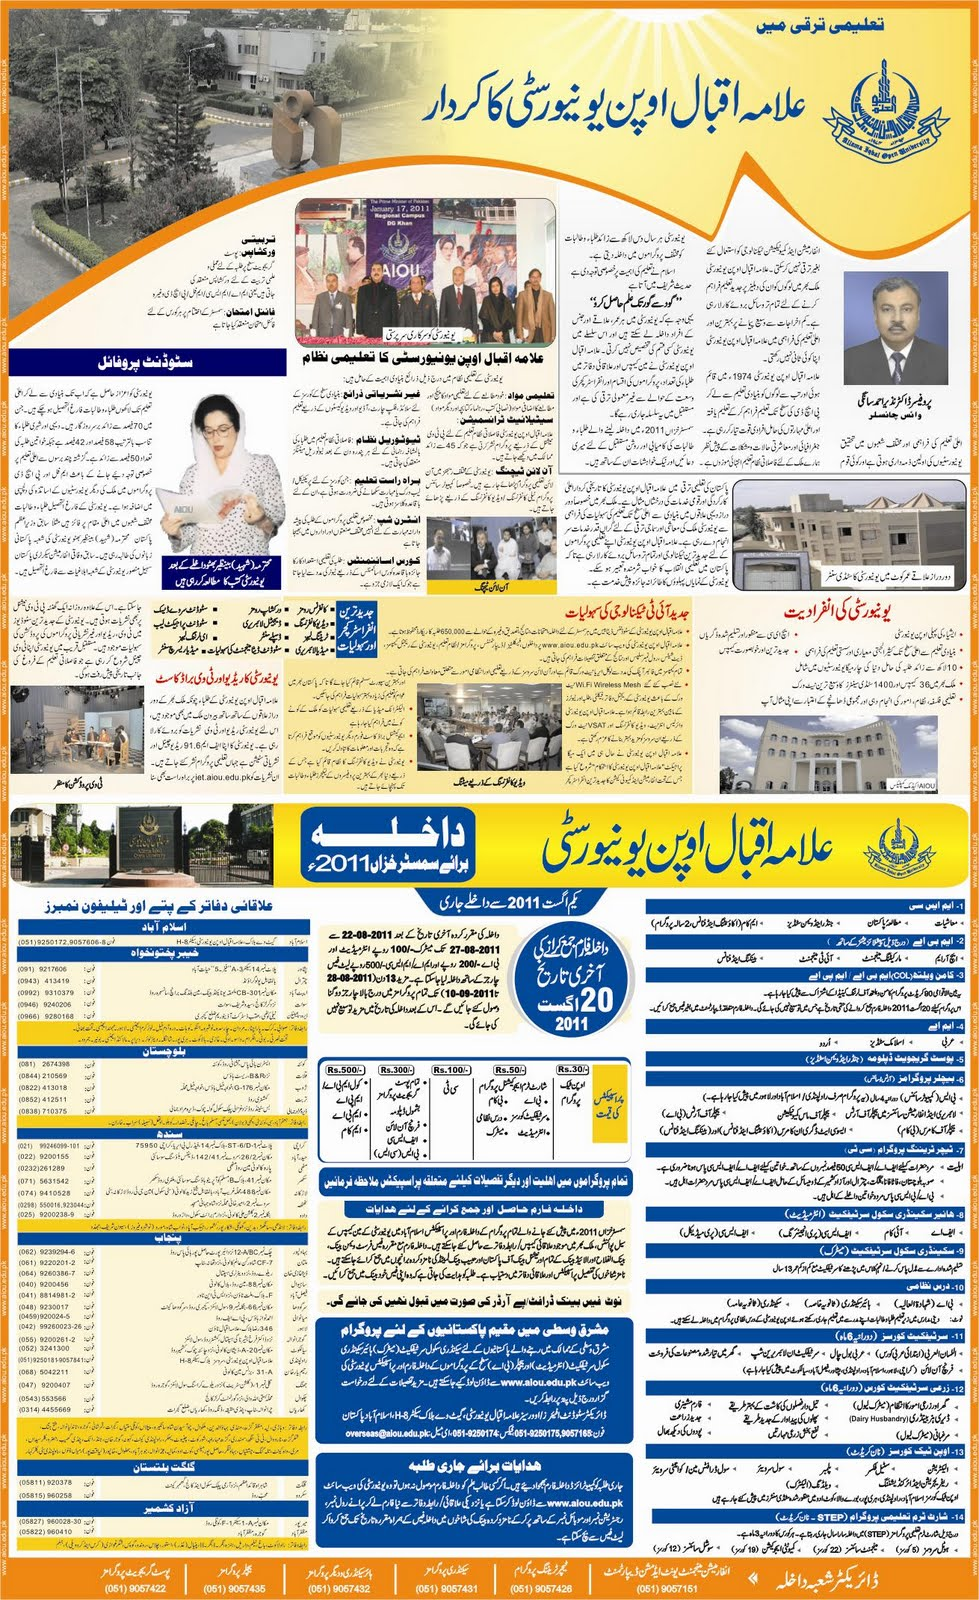 ALLAMA IQBAL OPEN UNIVERSITY: AIOU Admission Open for BS